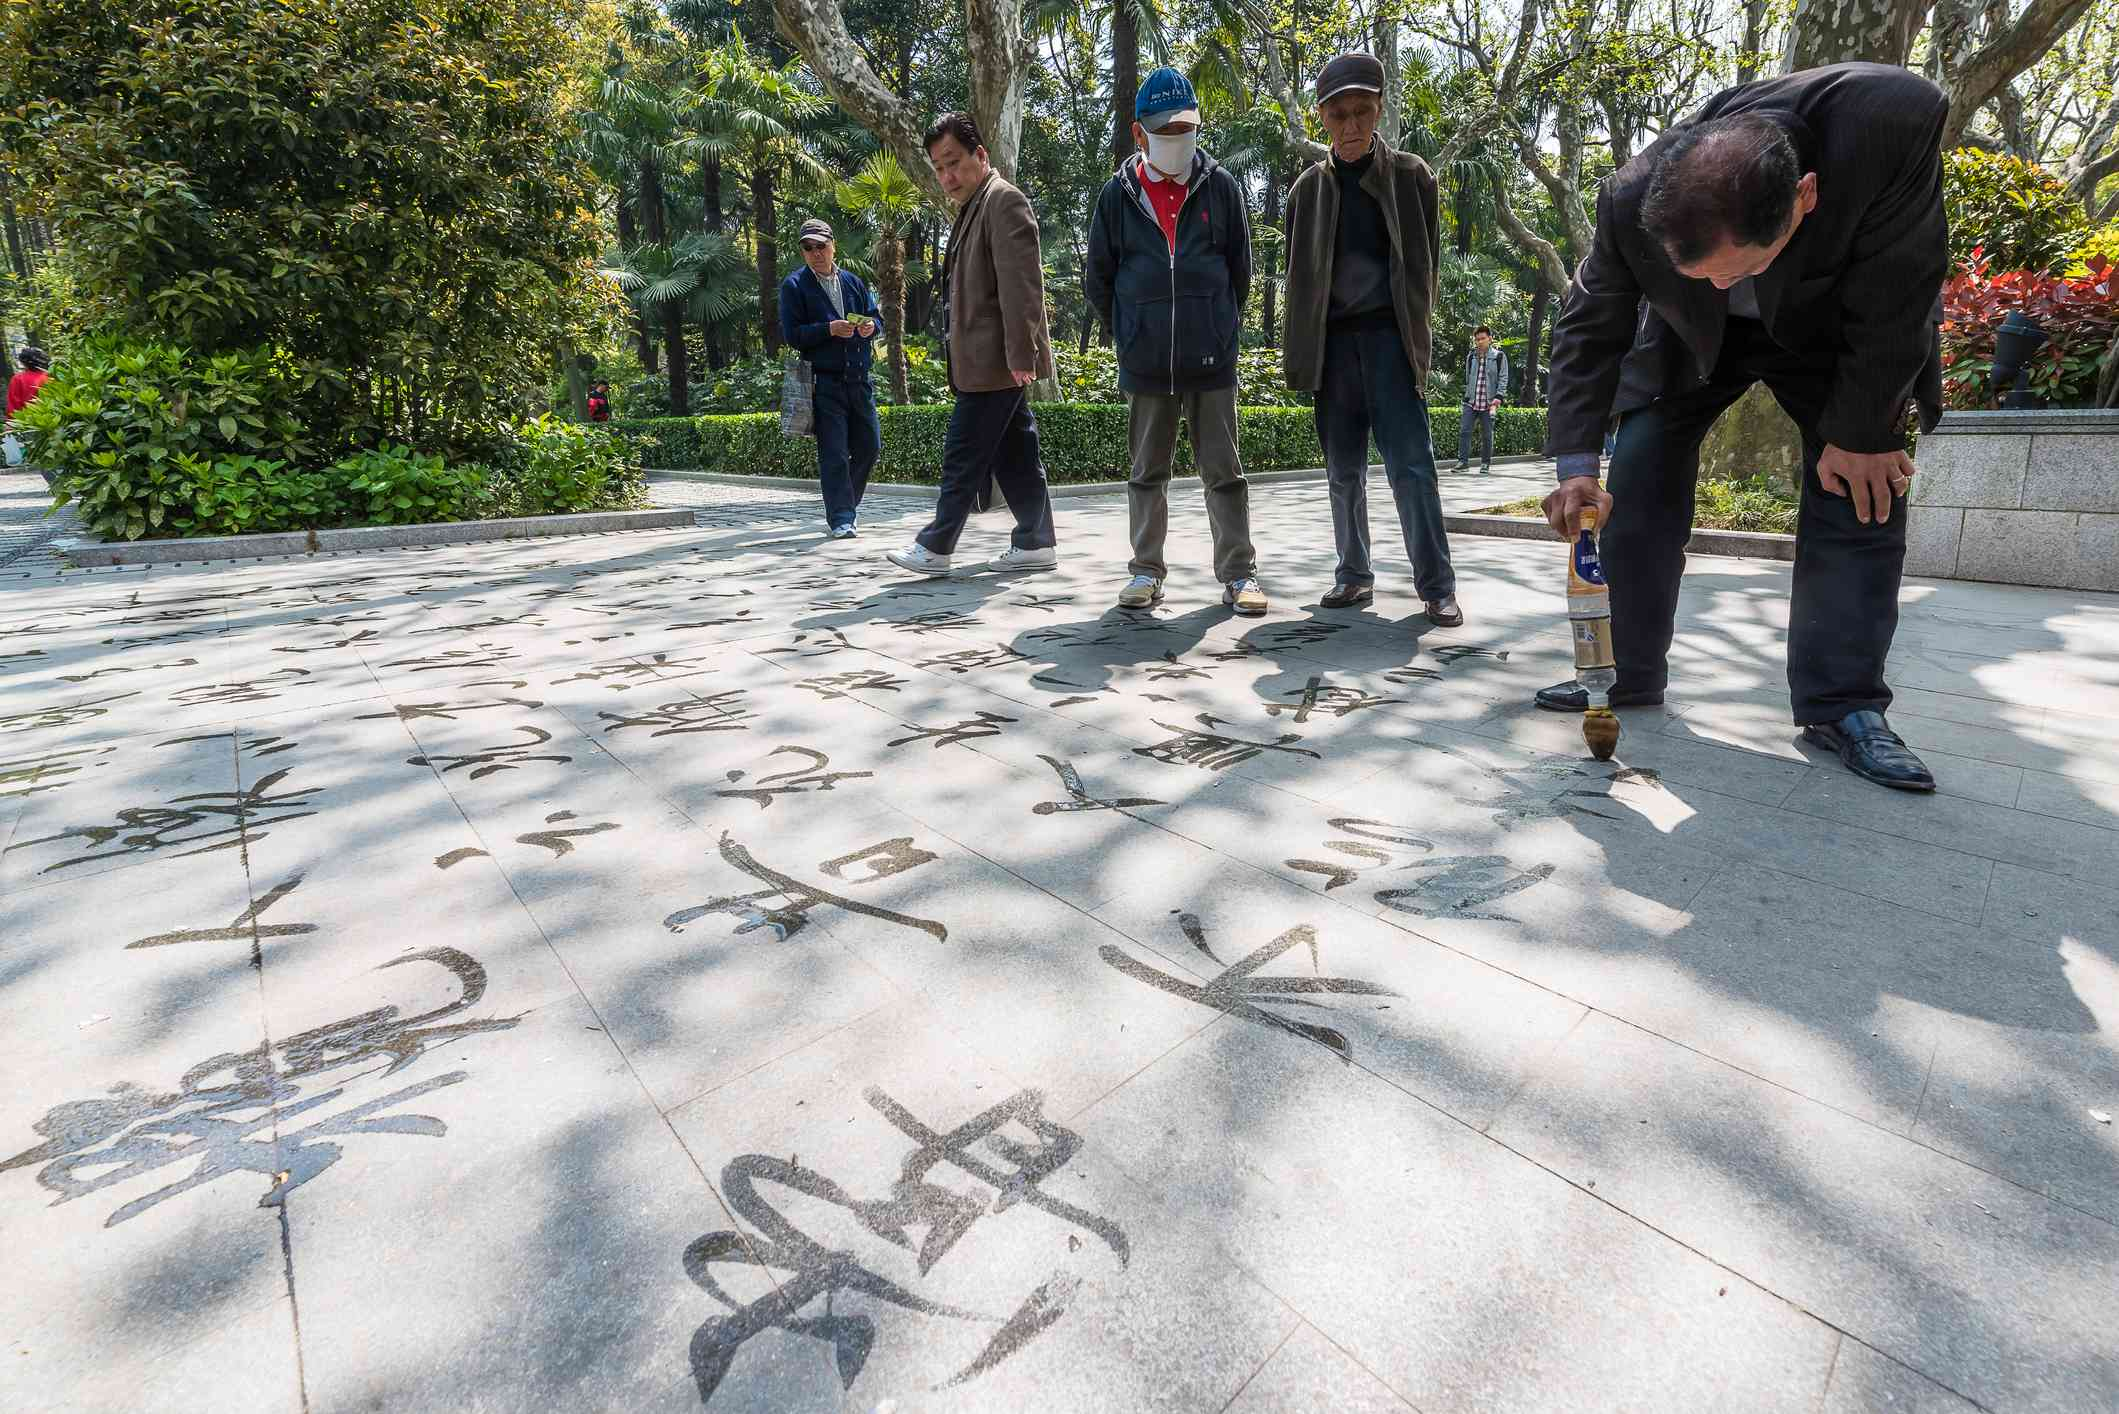 chinese calligraphy with water fuxing park shanghai china